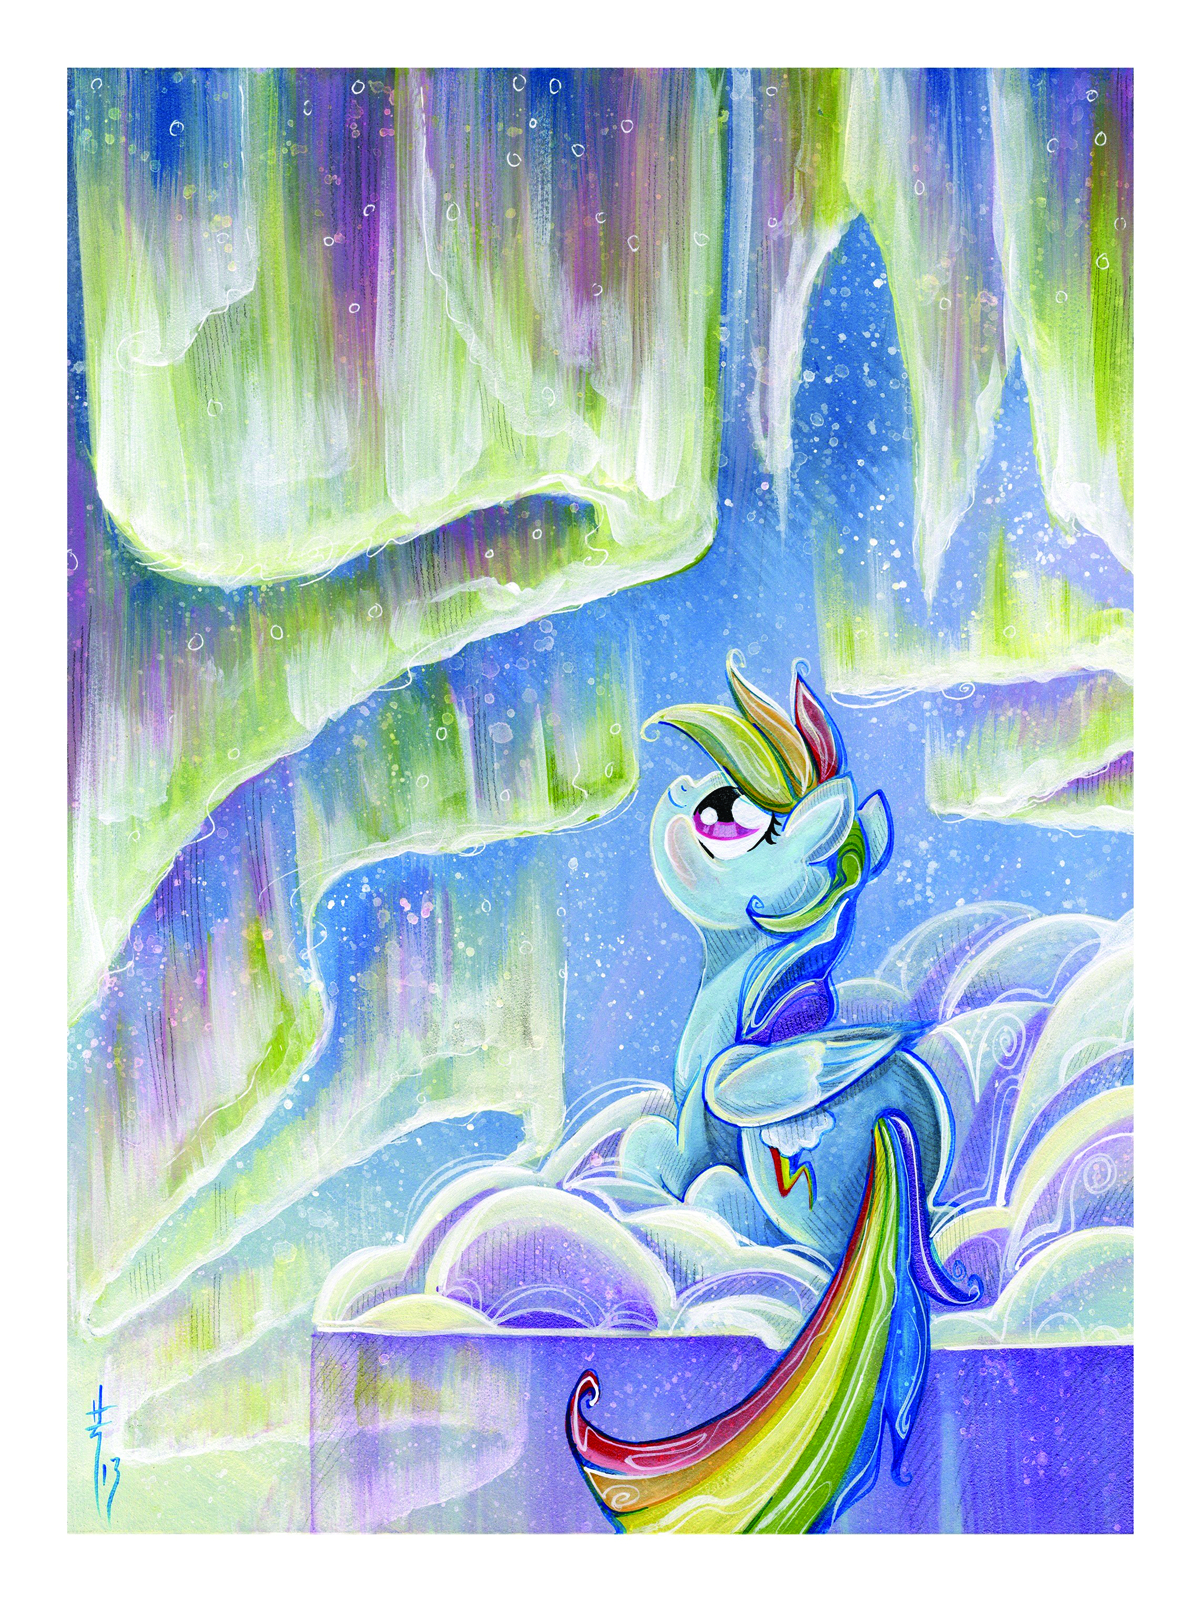 MY LITTLE PONY RAINBOW DASH LITHOGRAPH SIGNED ED